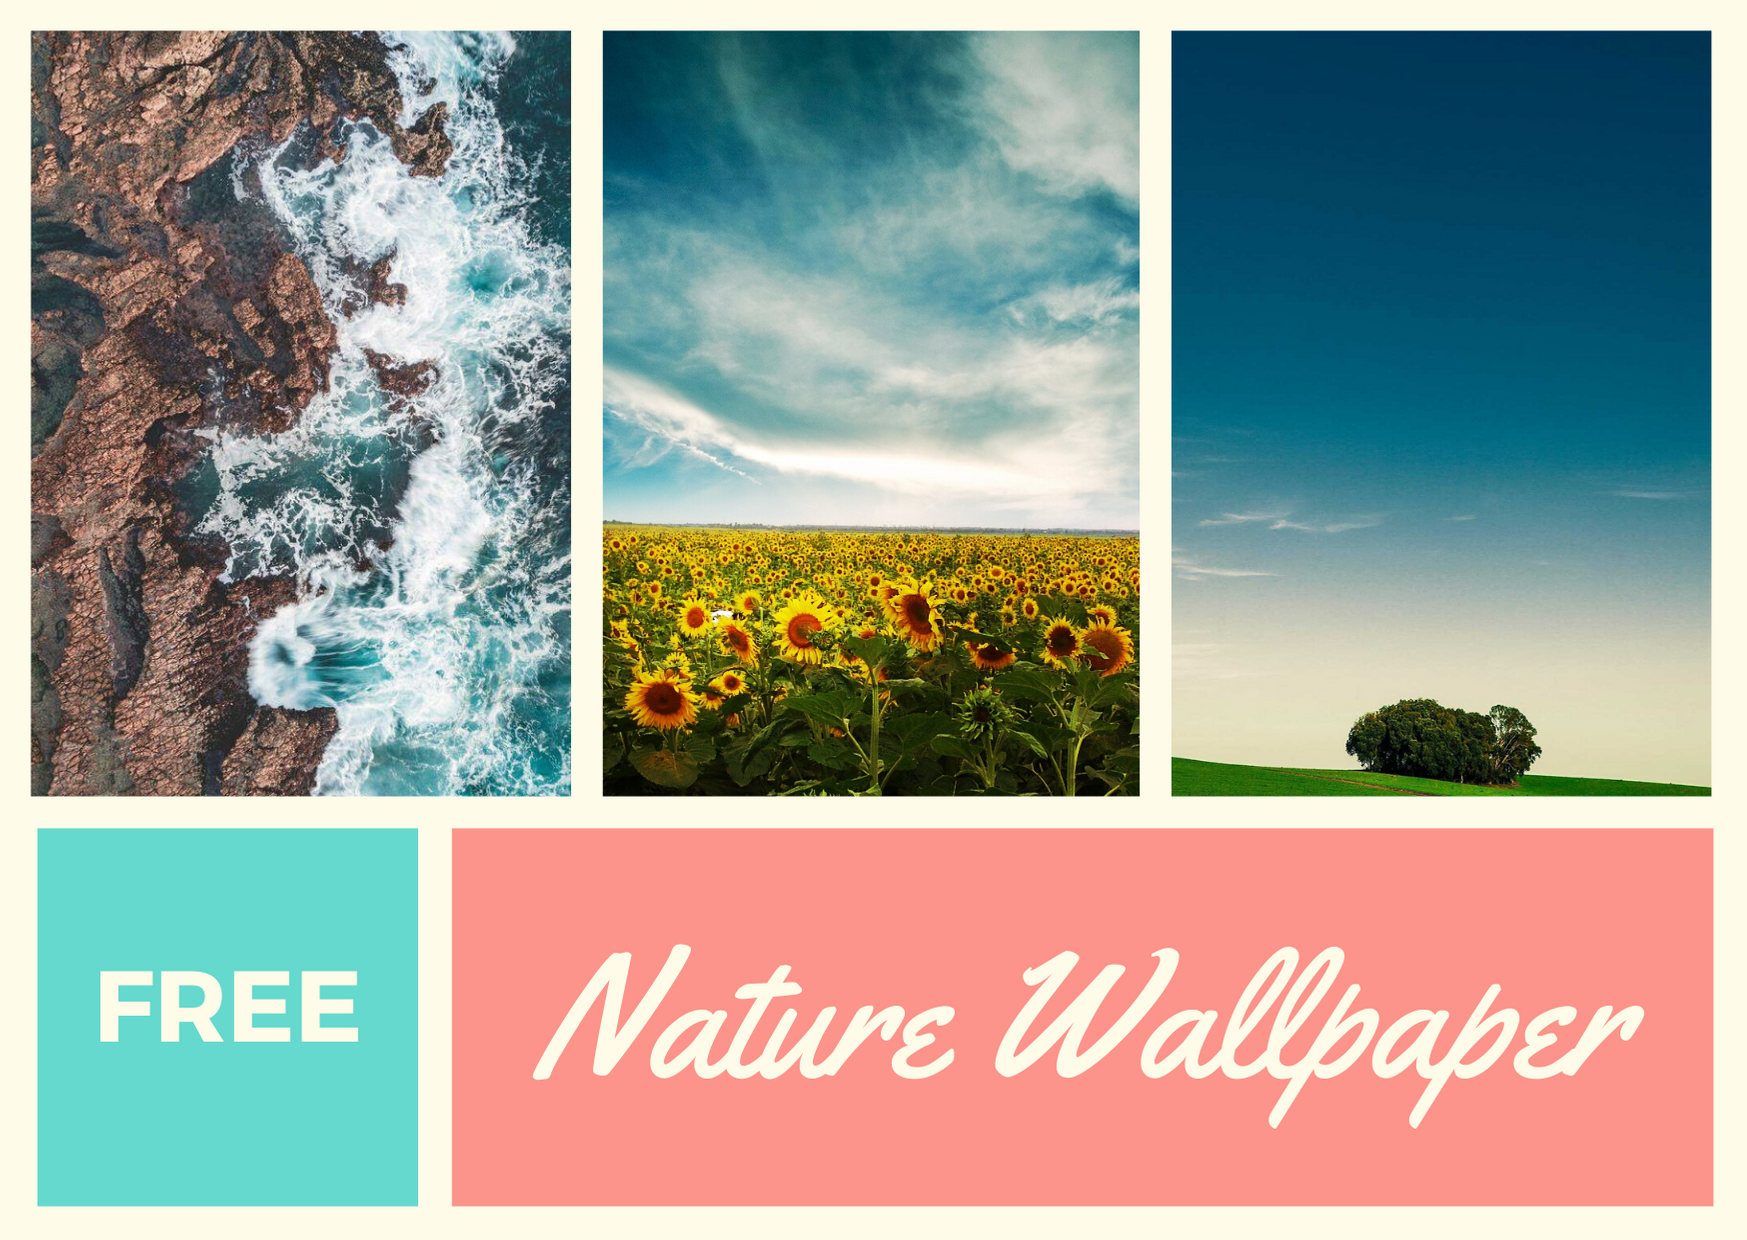 Cool Phone Wallpapers Nature To Fresh Your Device Poster 1747x1240 Download Hd Wallpaper Wallpapertip